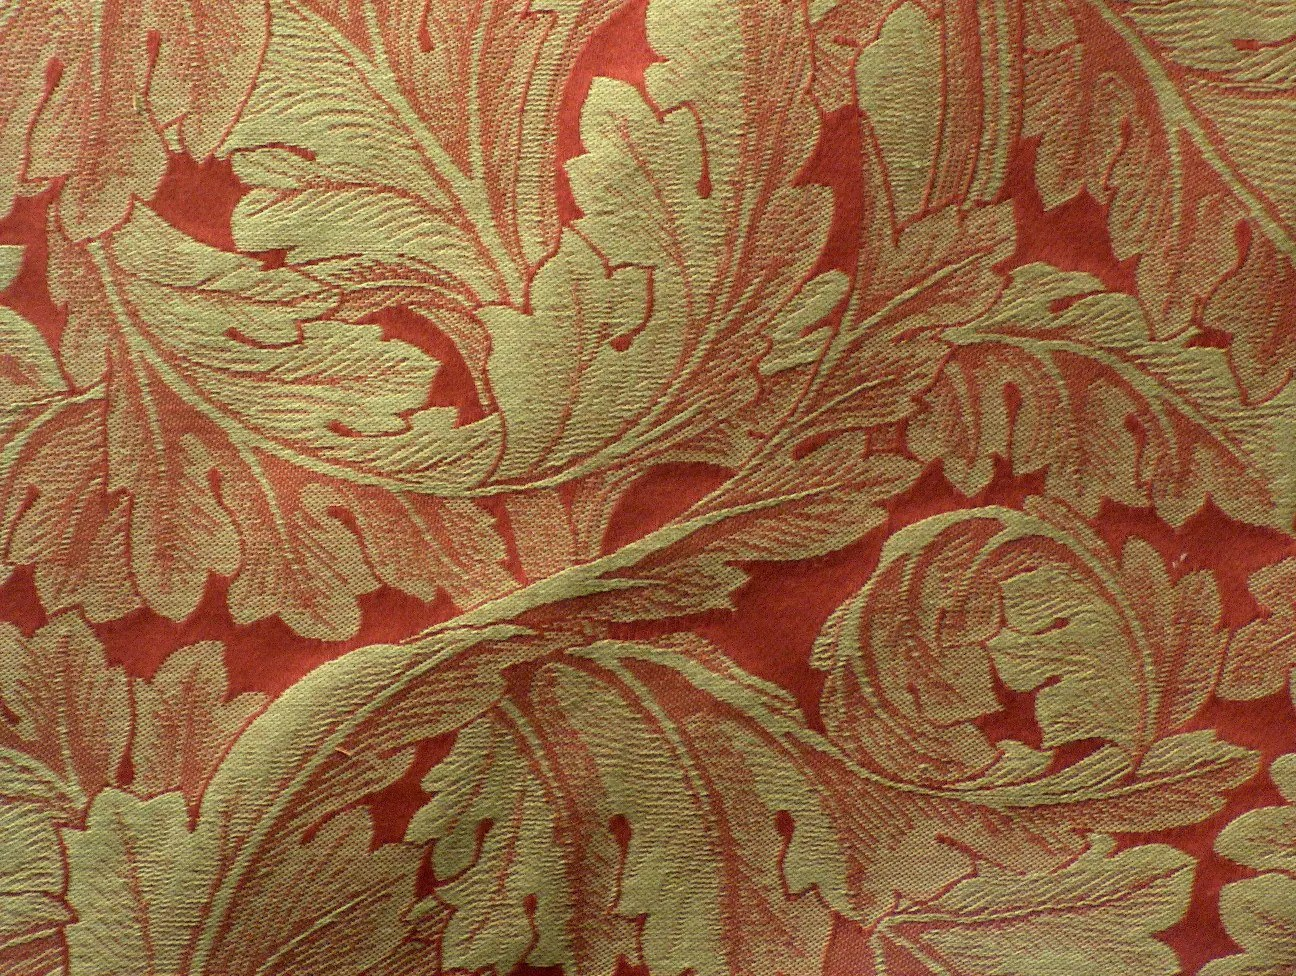 Reverse Weave Acanthus Leaf Fabric in Red and Tan